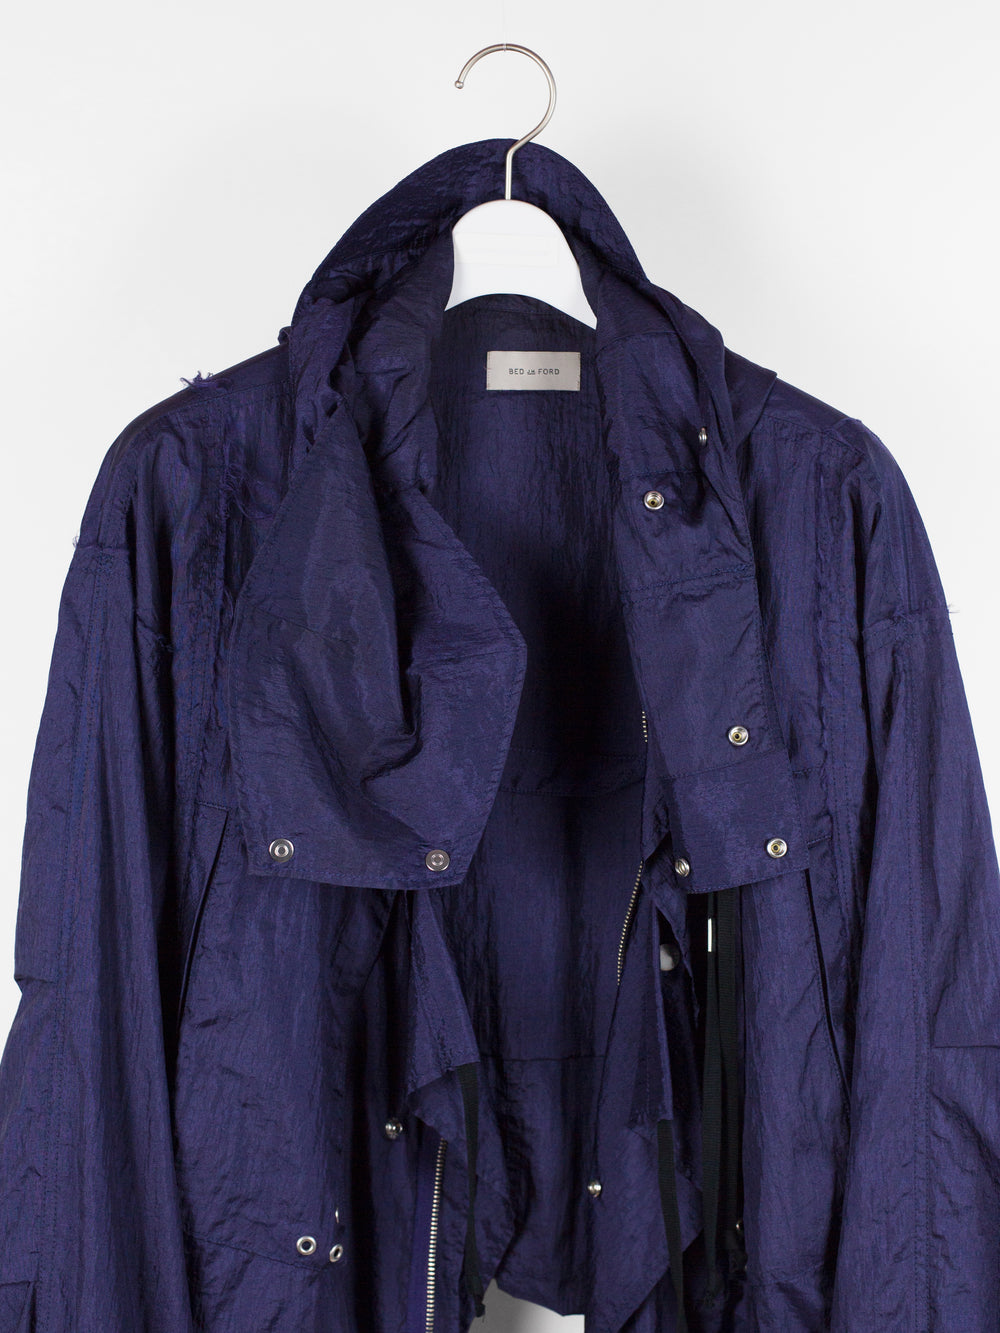 Bed J.W. Ford SS19 Hoodie Jacket